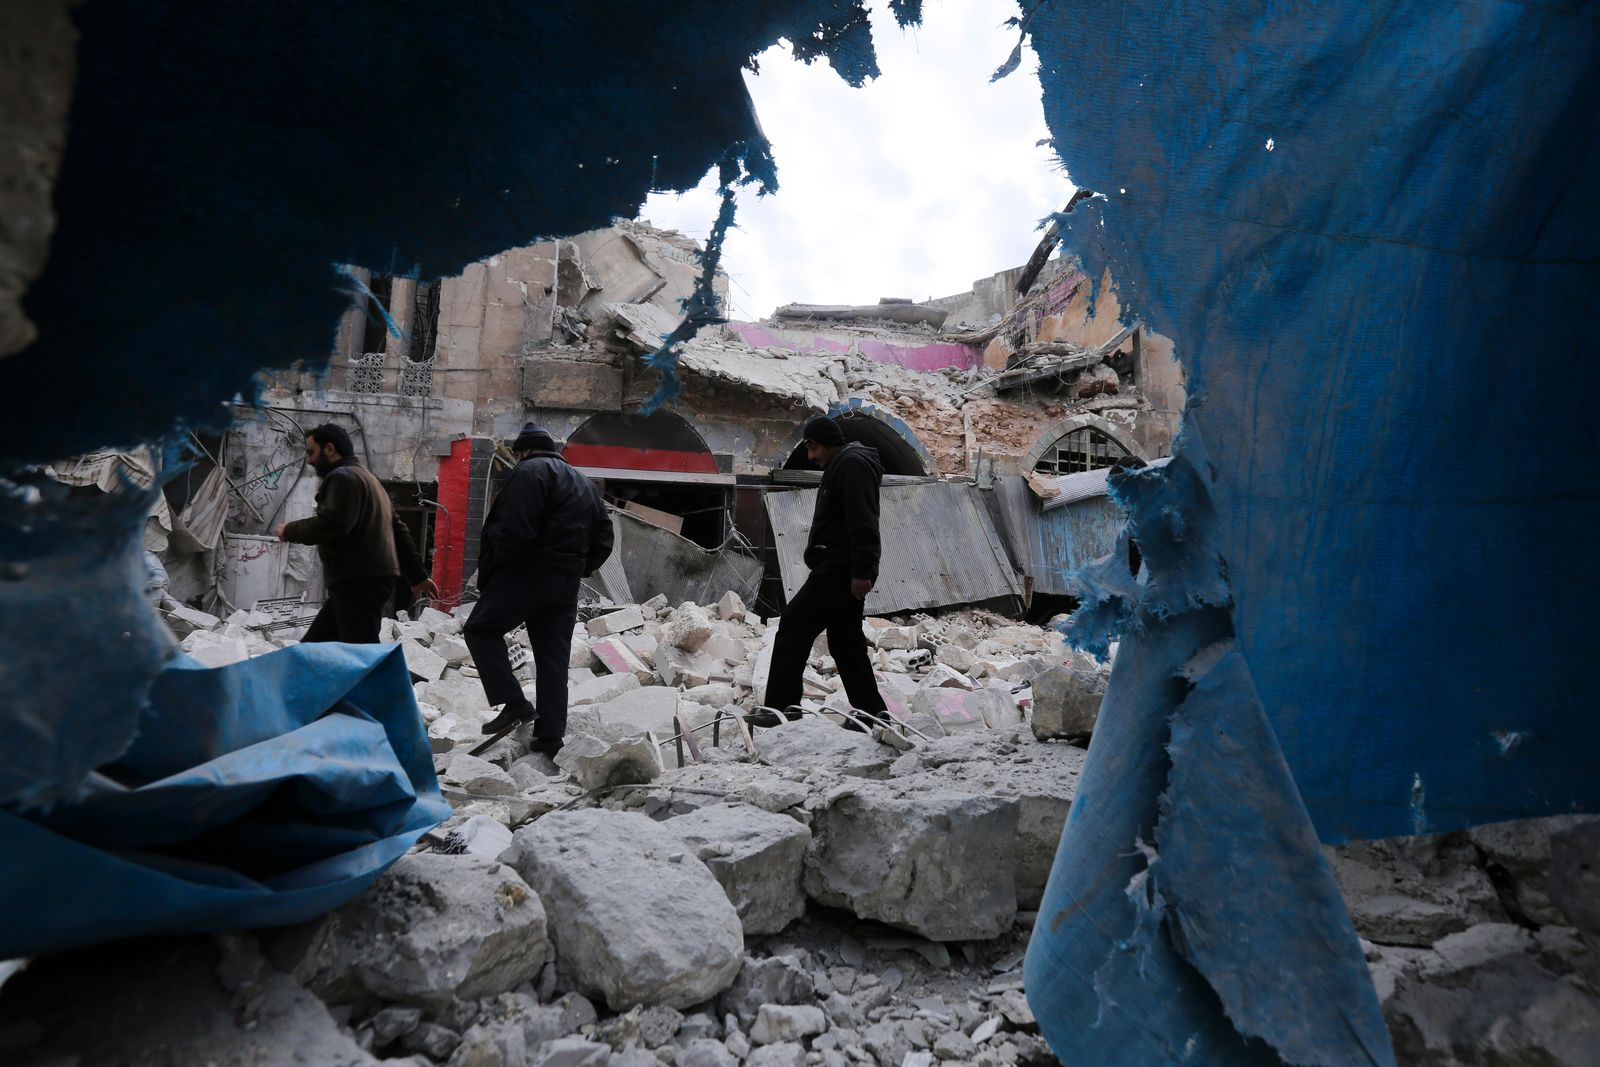 People walk past destruction by the government airstrikes in the town of Ariha, in Idlib province, Syria, Wednesday, Jan. 15, 2020. (AP Photo/Ghaith Alsayed)